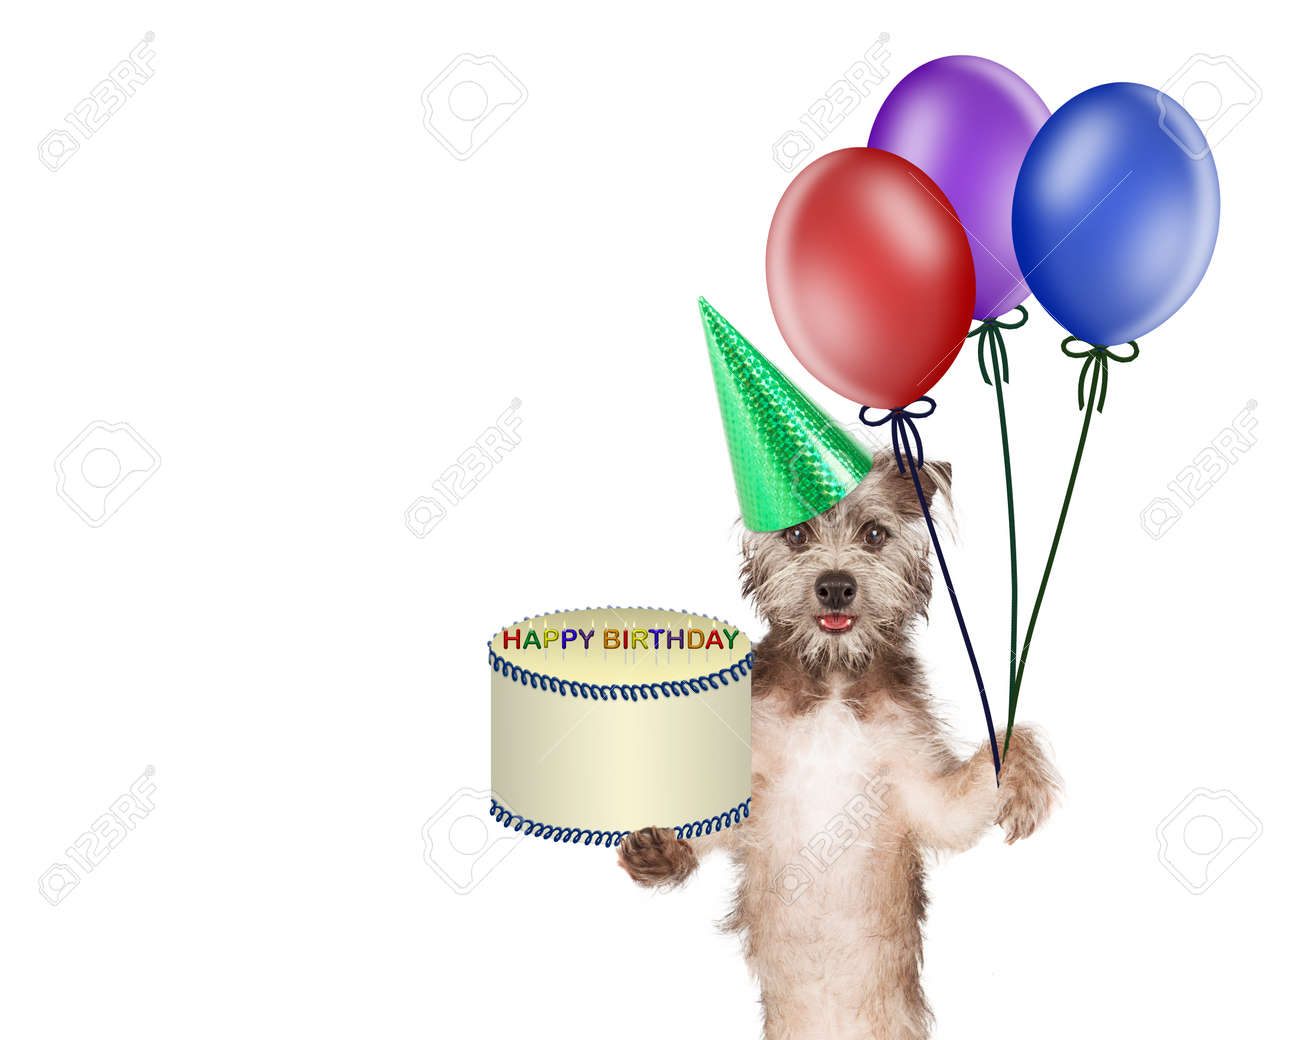 Cute And Happy Dog Carrying A Birthday Cake And Colorful Balloons